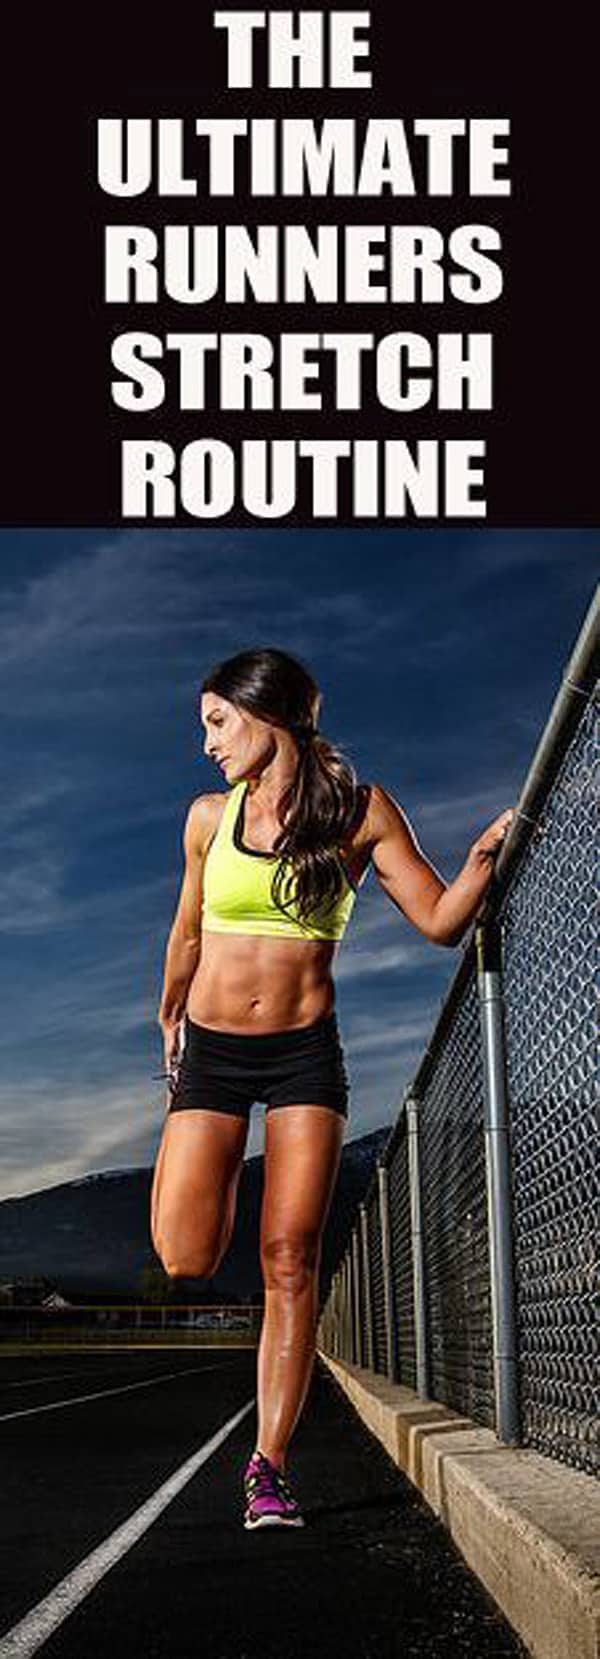 The Ultimate Runner's Stretch Routine - stretching routines